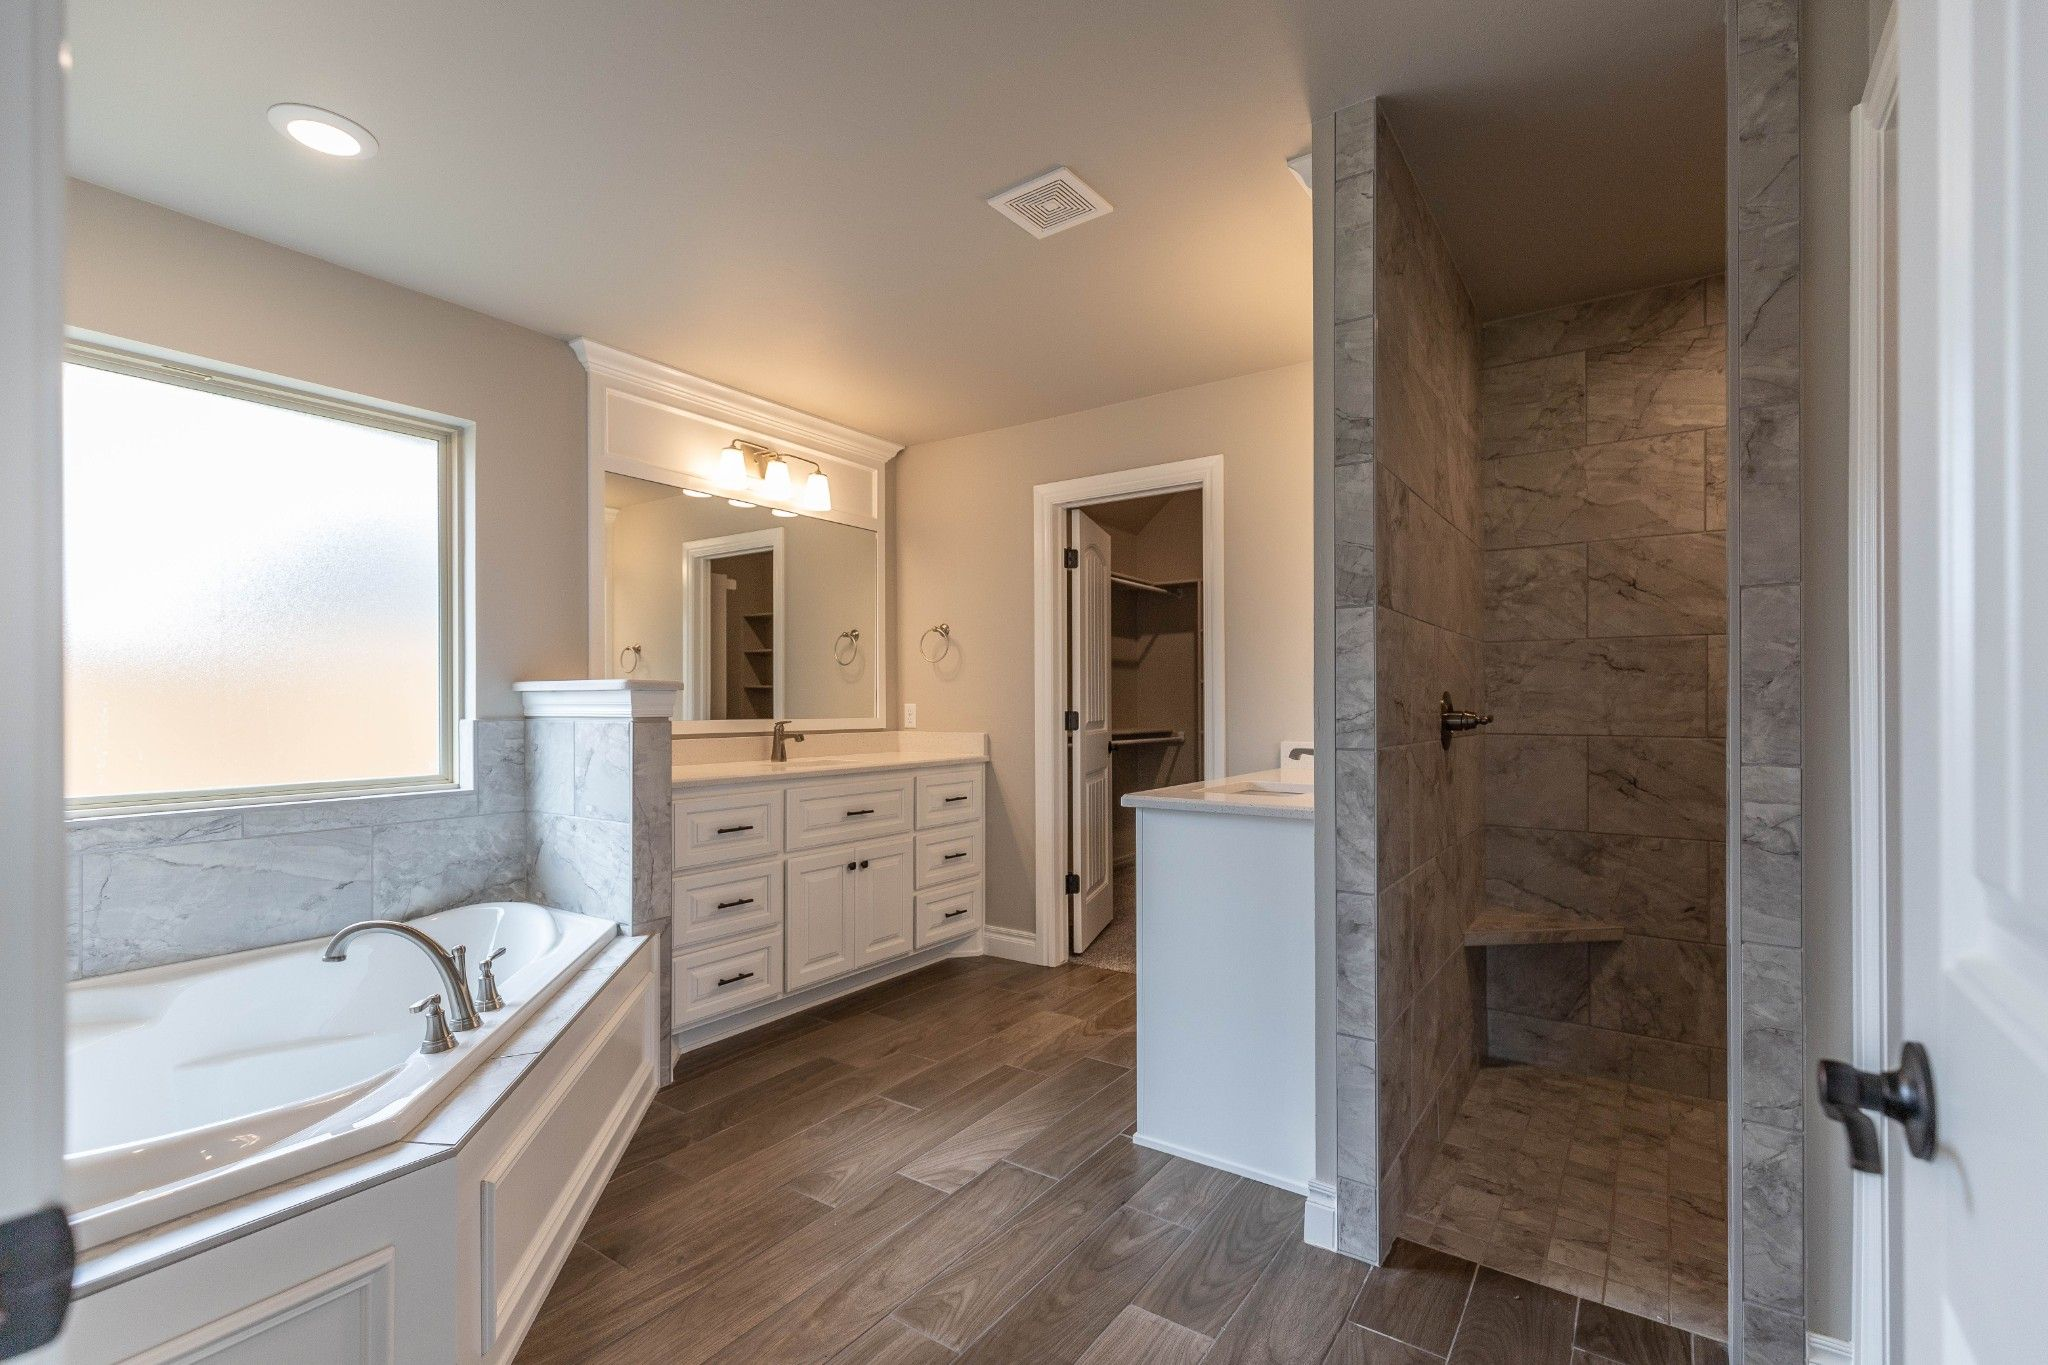 Bathroom featured in the Cornerstone By Homes By Taber in Oklahoma City, OK